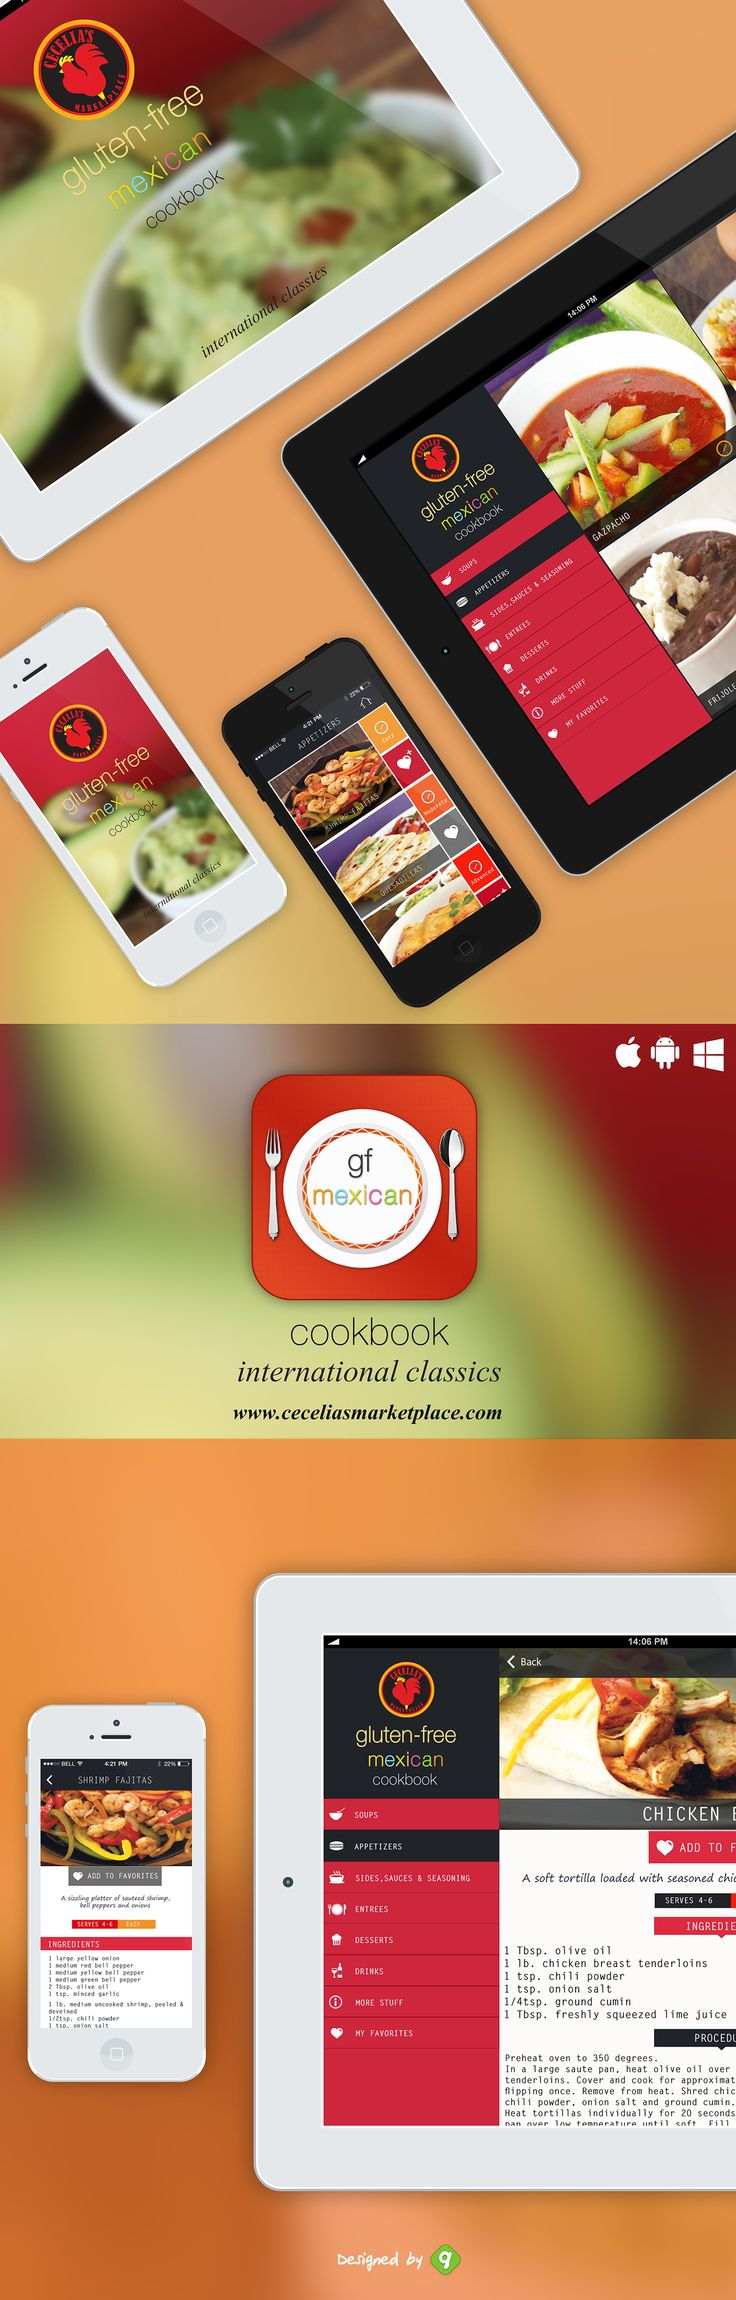 """This app is designed for Cecelias Marketplace- """" Gluten-Free Mexican Cookbook """"."""" Cecelia's Marketplace International Classics Gluten-Free Mexican Cookbook is a perfect way to incorporate new and exciting gluten-free flavors into your kitchen. You will …"""